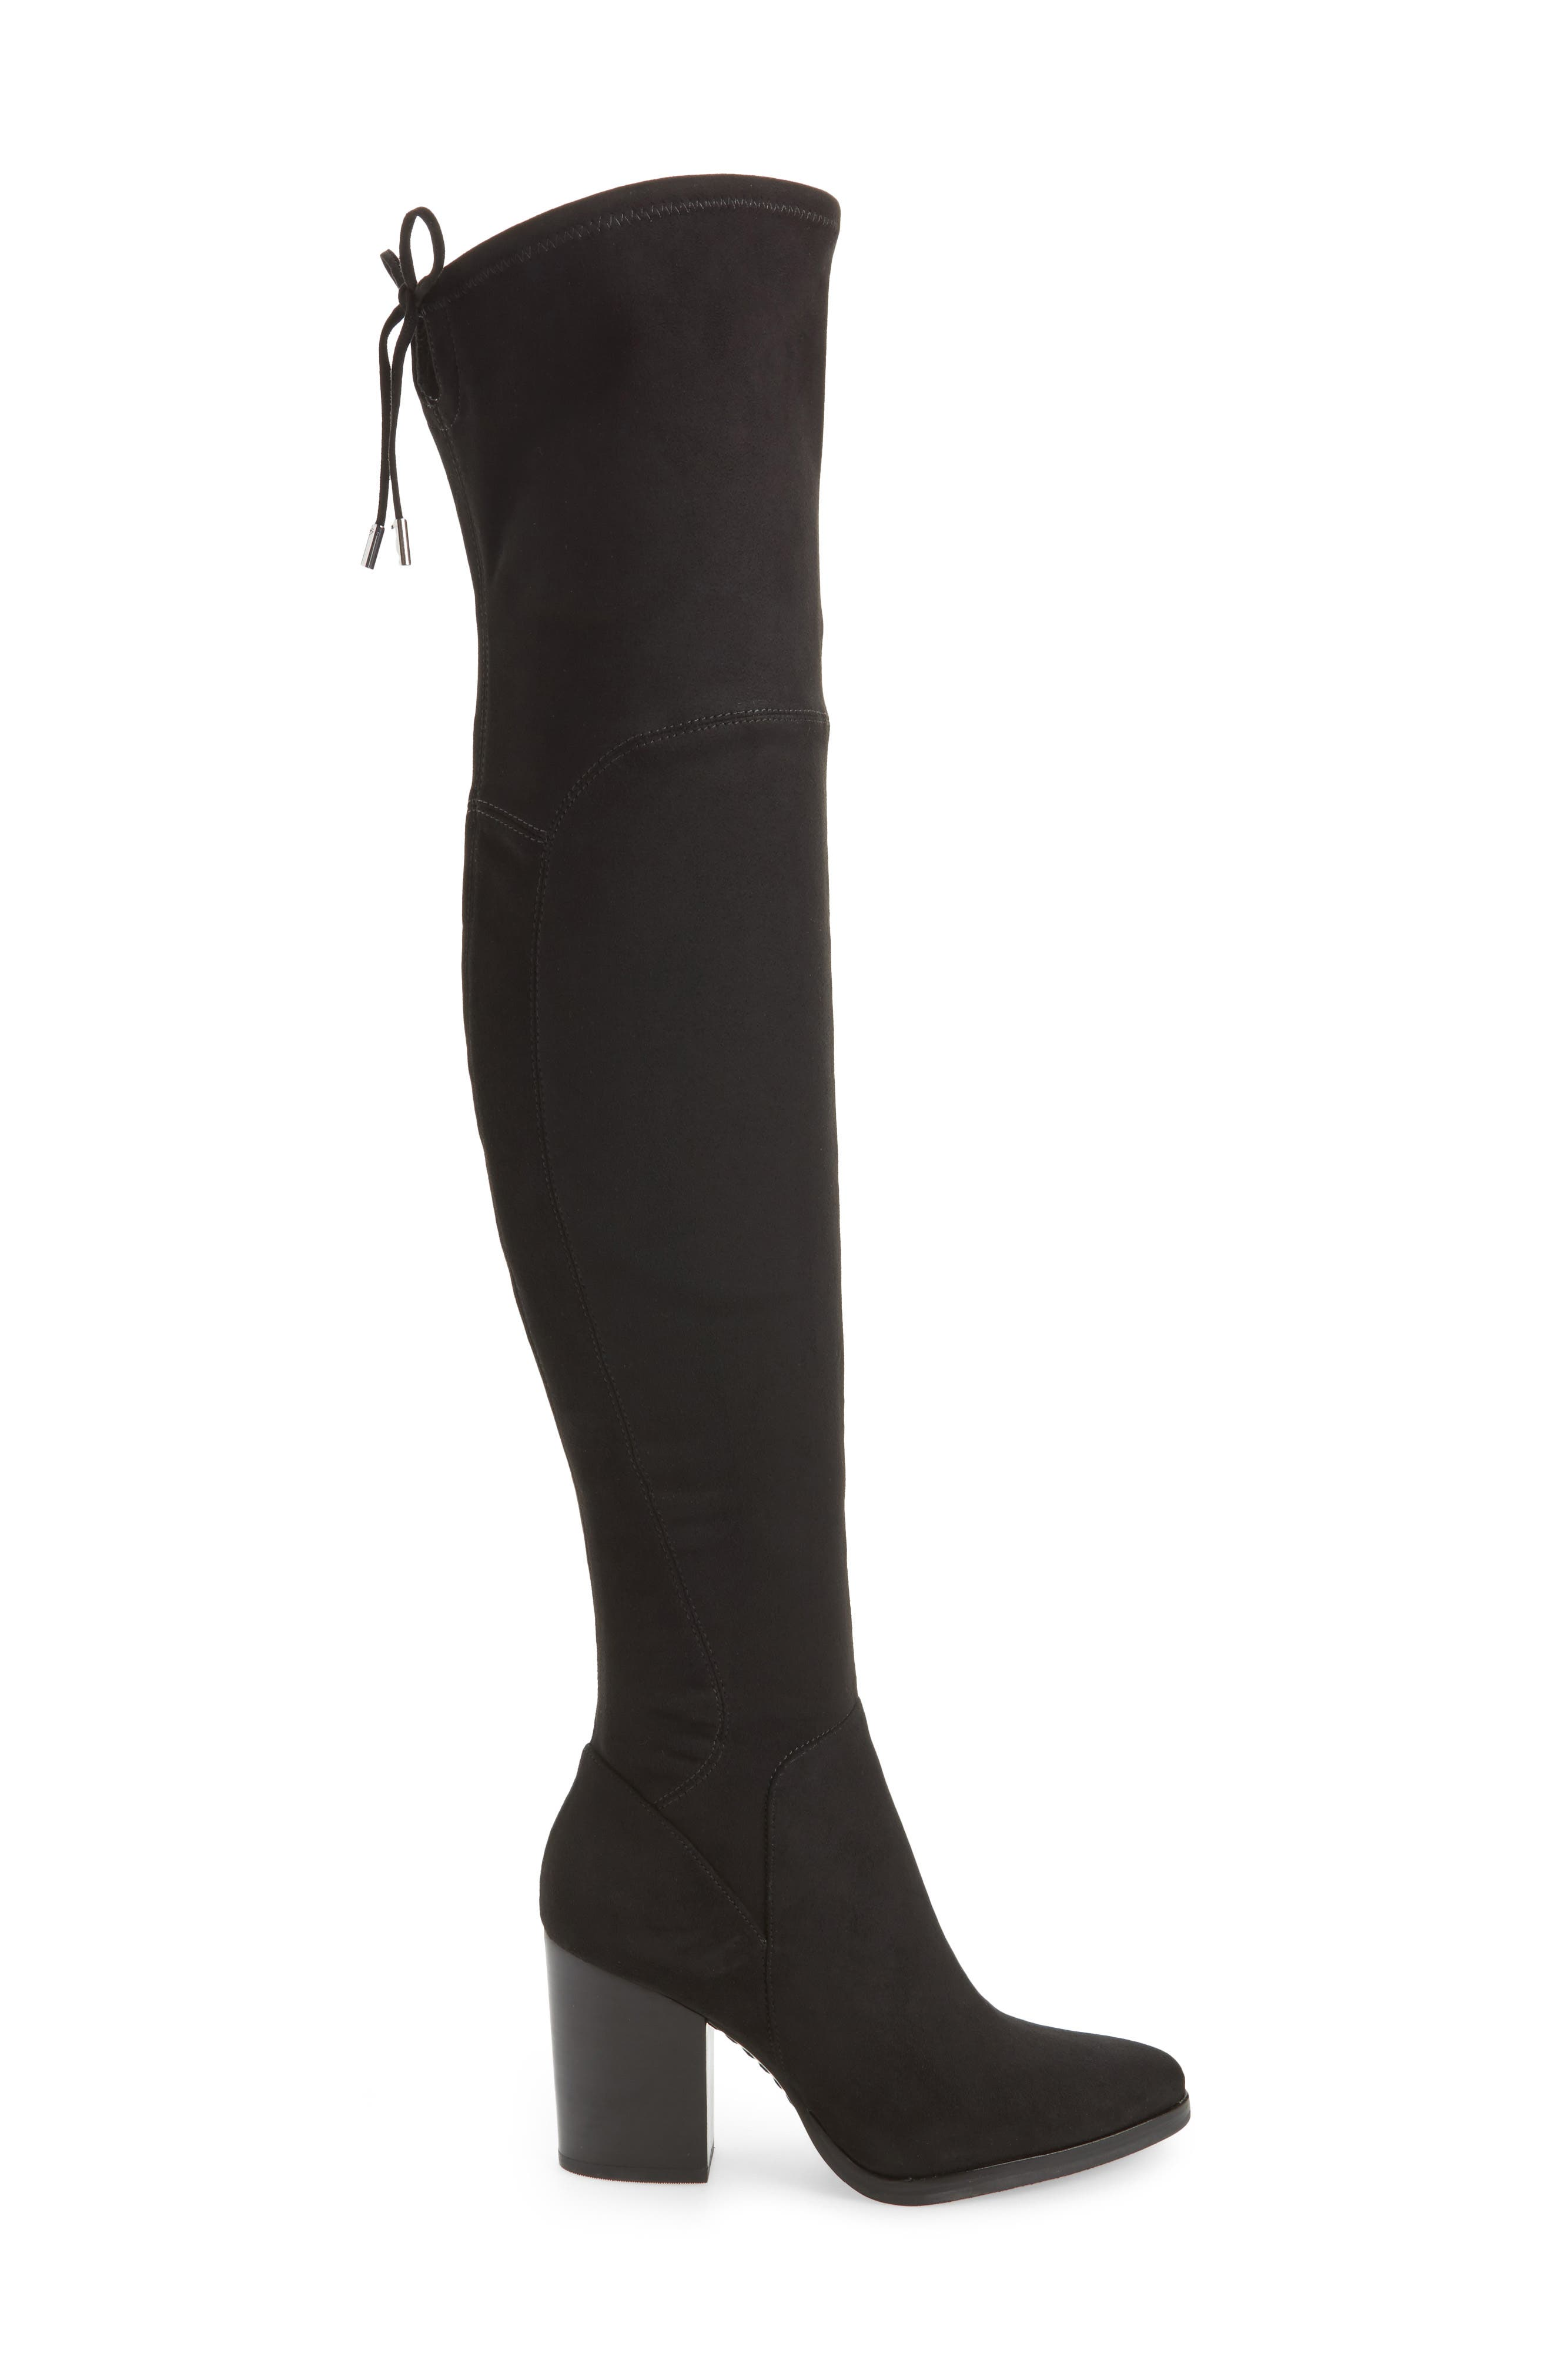 Adora Over the Knee Boot,                             Alternate thumbnail 3, color,                             001